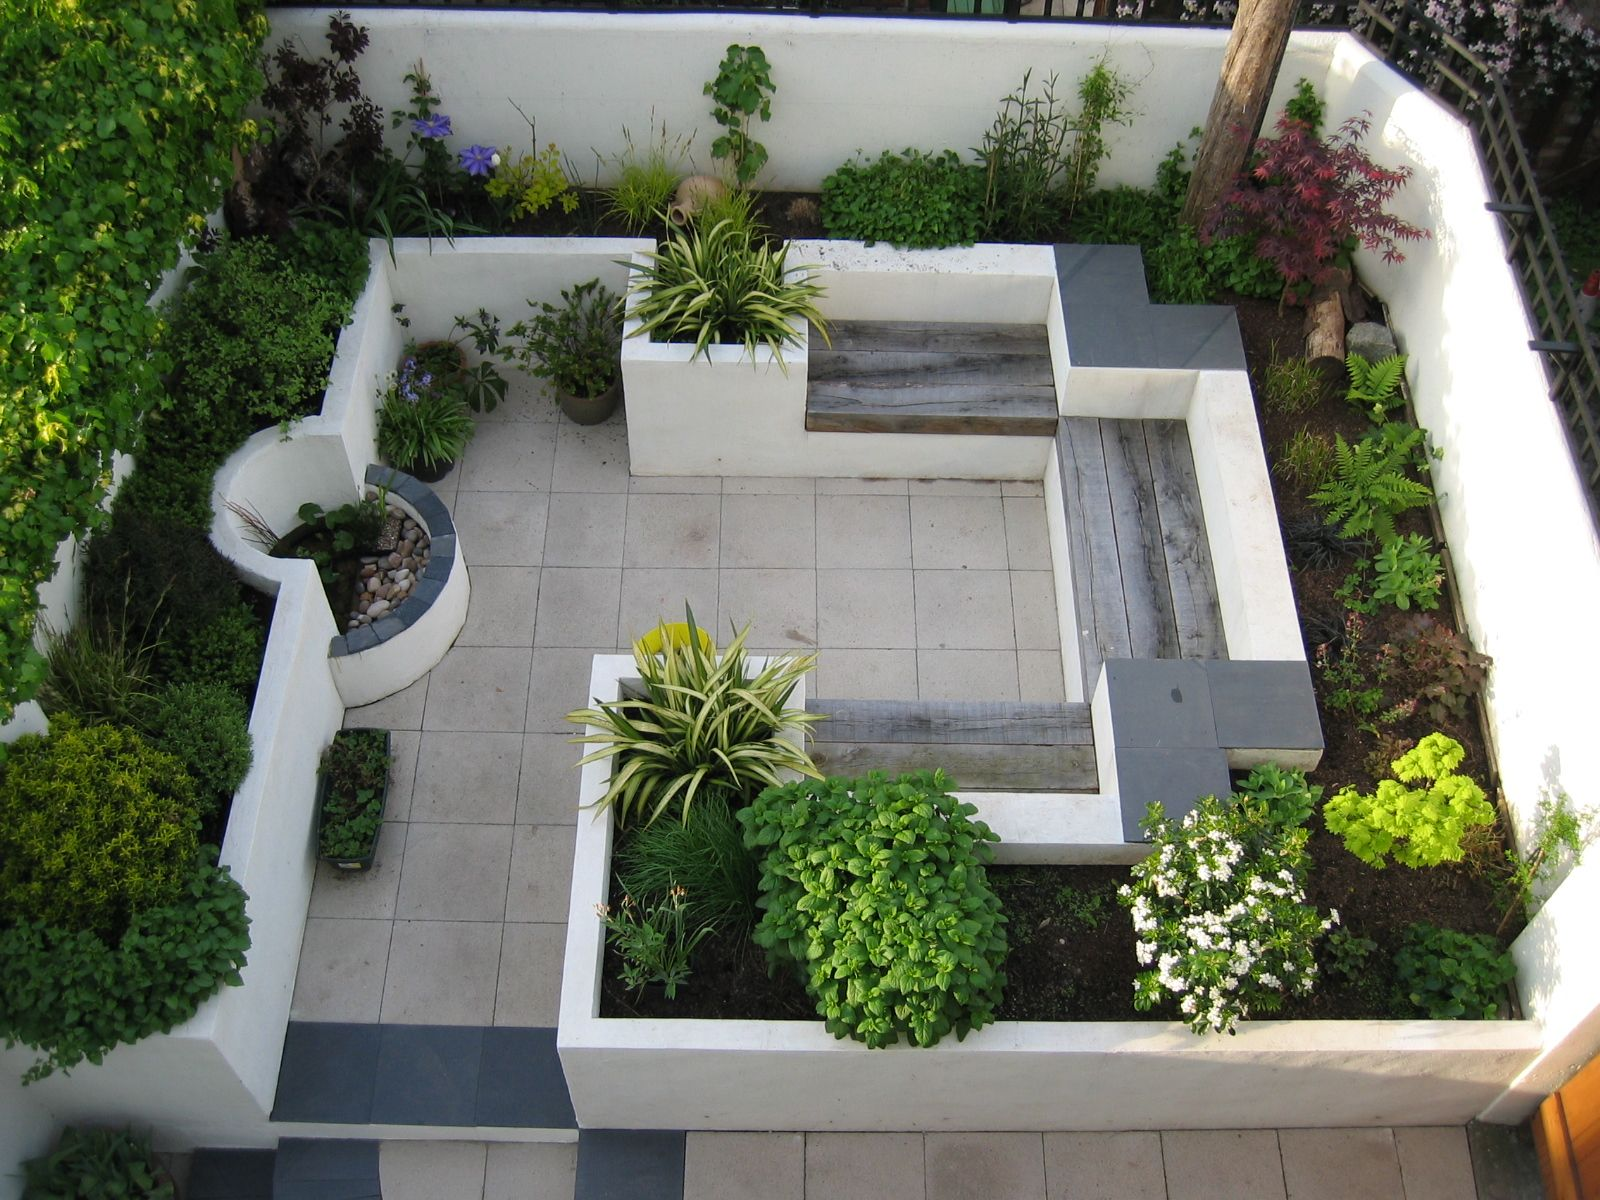 This modern courtyard garden makes good use of a small for Courtyard garden ideas photos